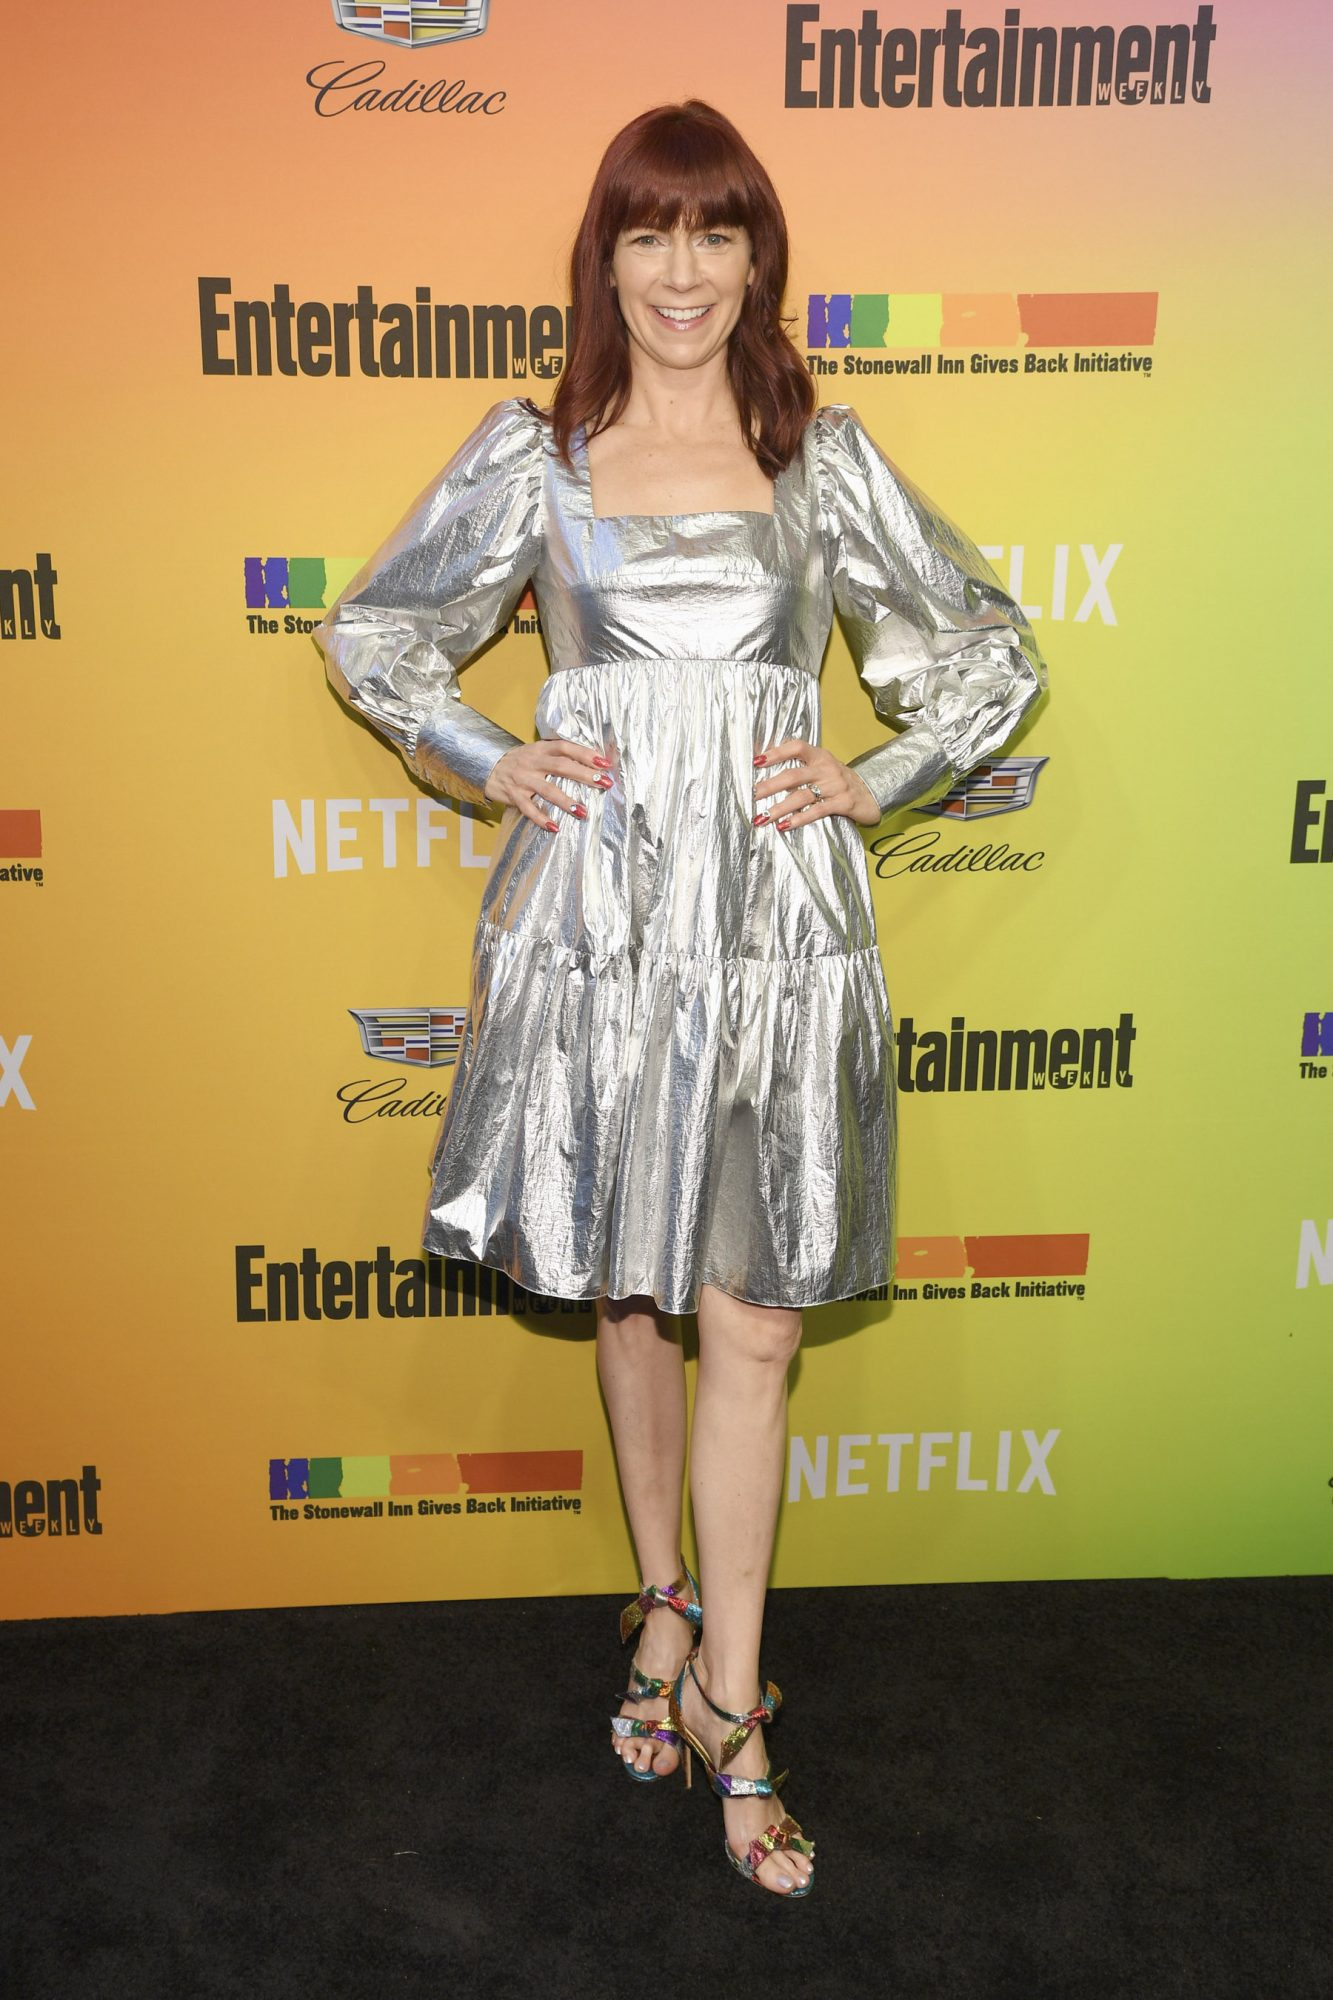 NEW YORK, NEW YORK - JUNE 05: Carrie Preston attends as Entertainment Weekly Celebrates Its Annual LGBTQ Issue at the Stonewall Inn on June 05, 2019 in New York City. (Photo by Dimitrios Kambouris/Getty Images for Entertainment Weekly)